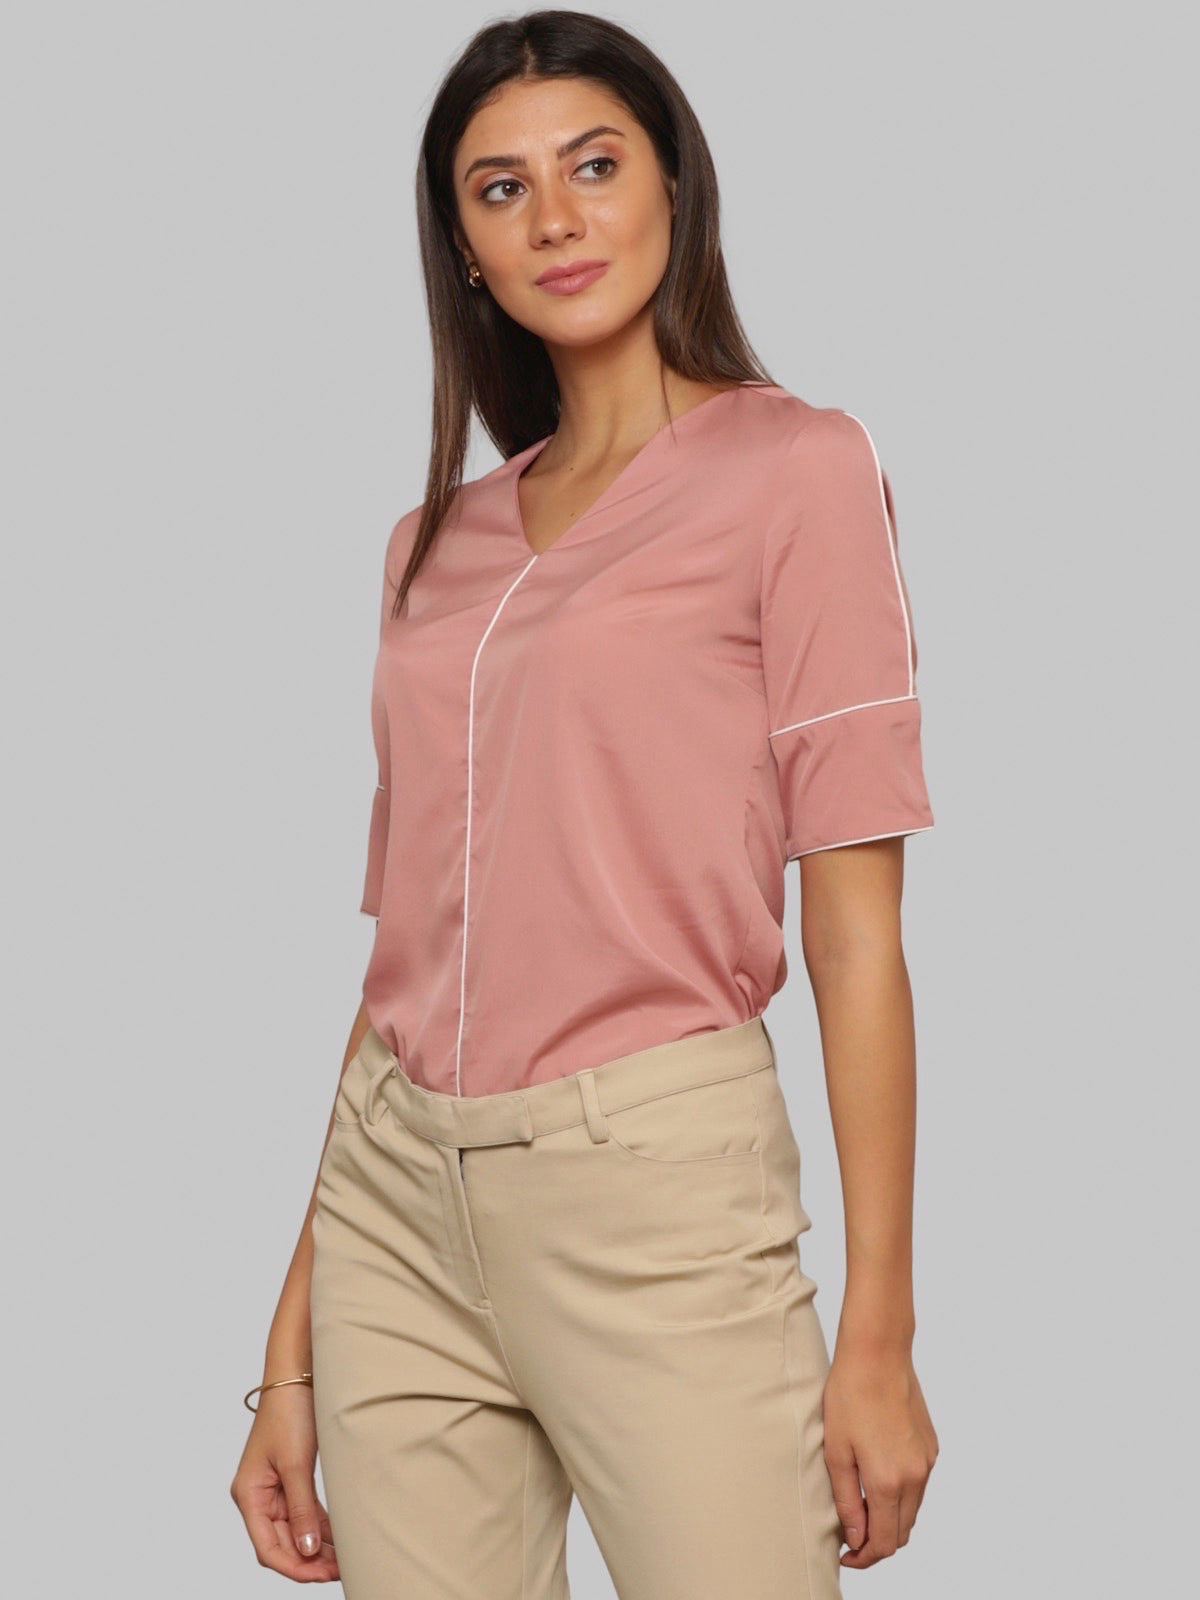 V Neck Top With Piping And Elbow Length Sleeves - Pink